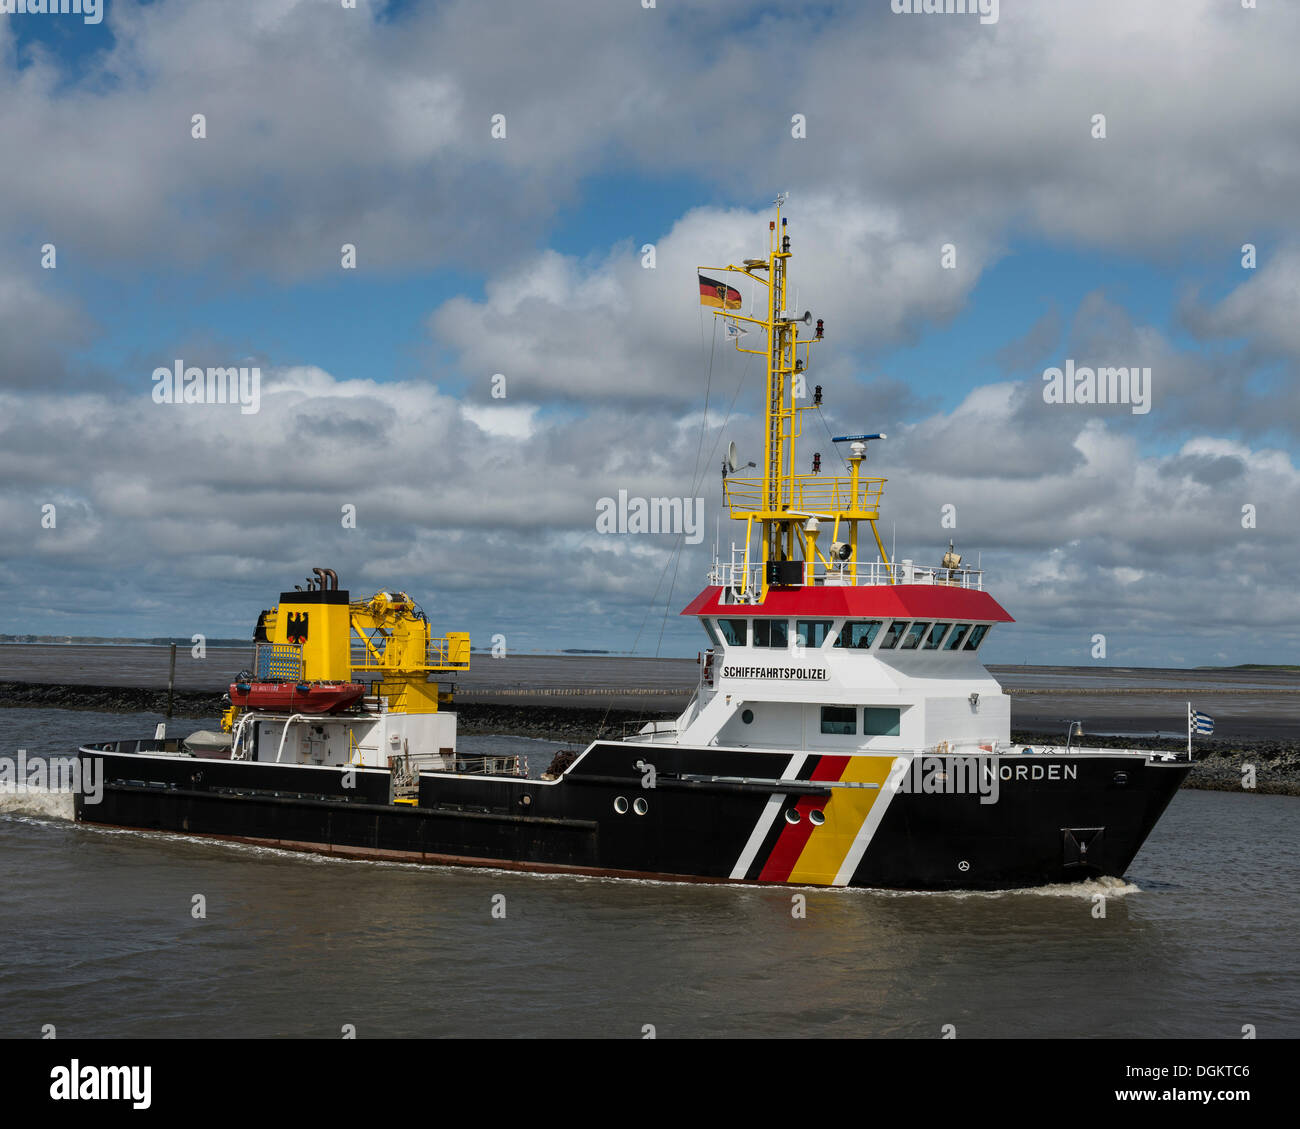 Maritime police boat, Norden, Lower Saxony Wadden Sea, Norddeich, East Frisia, Lower Saxony - Stock Image